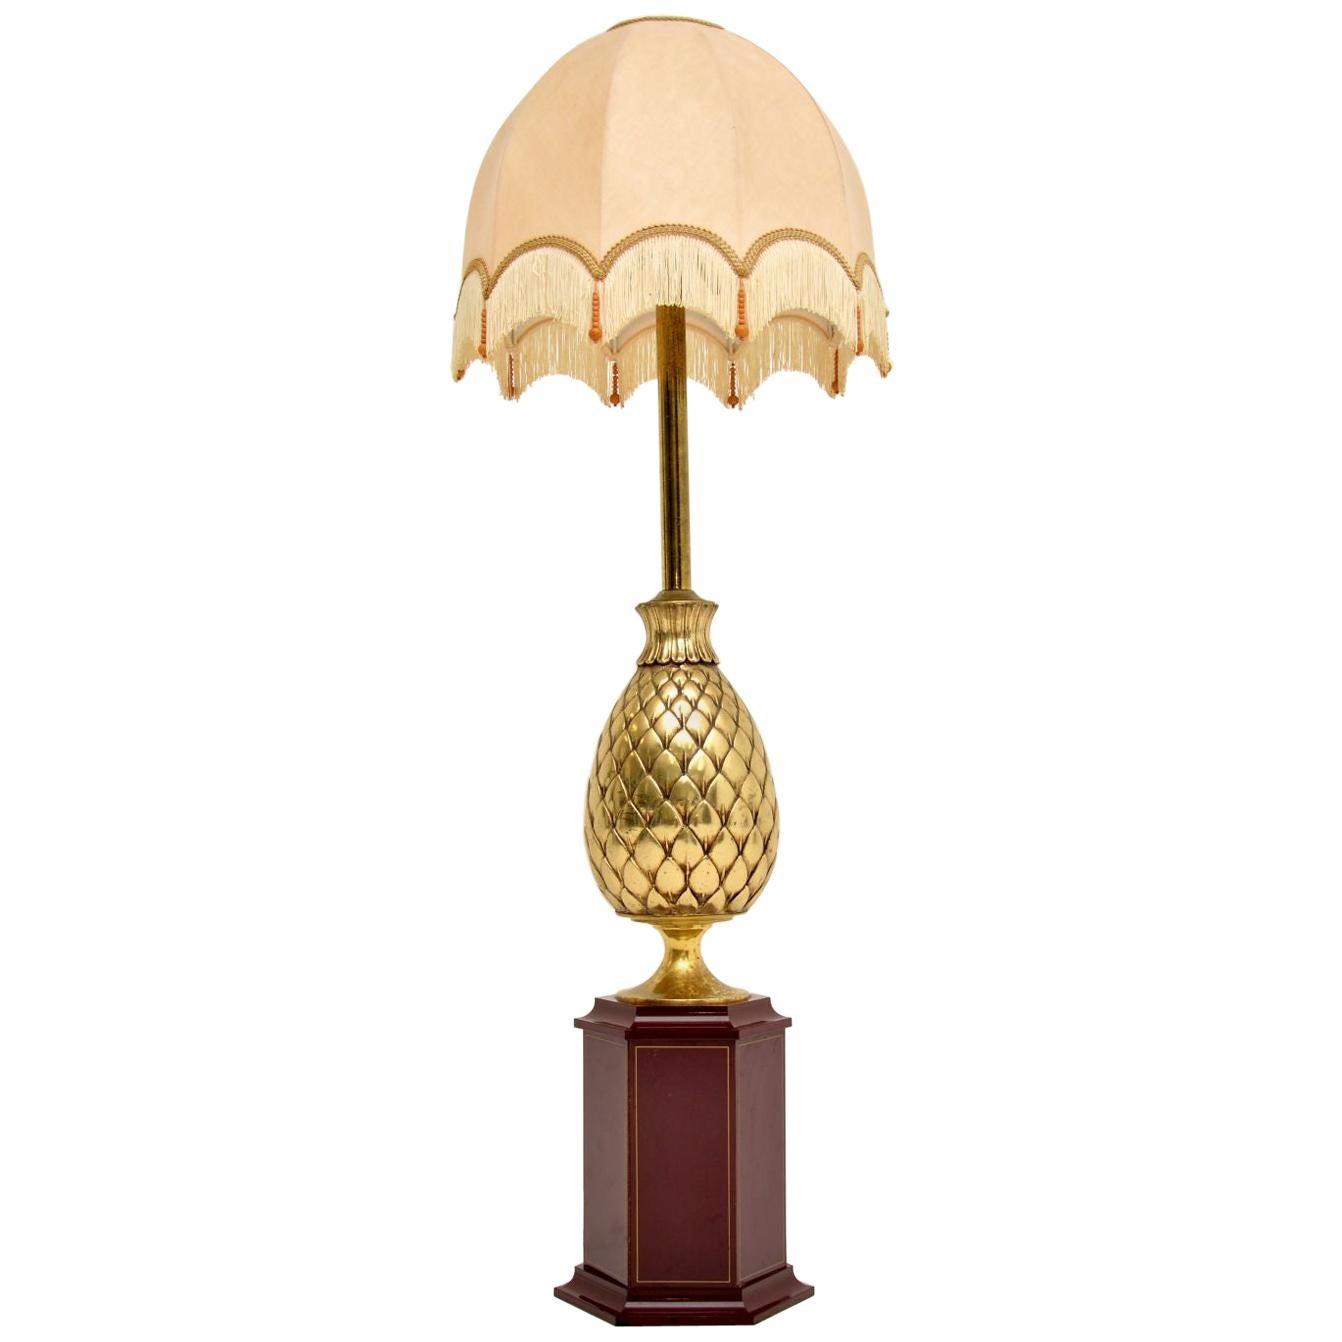 1970s Vintage Brass French Table Lamp